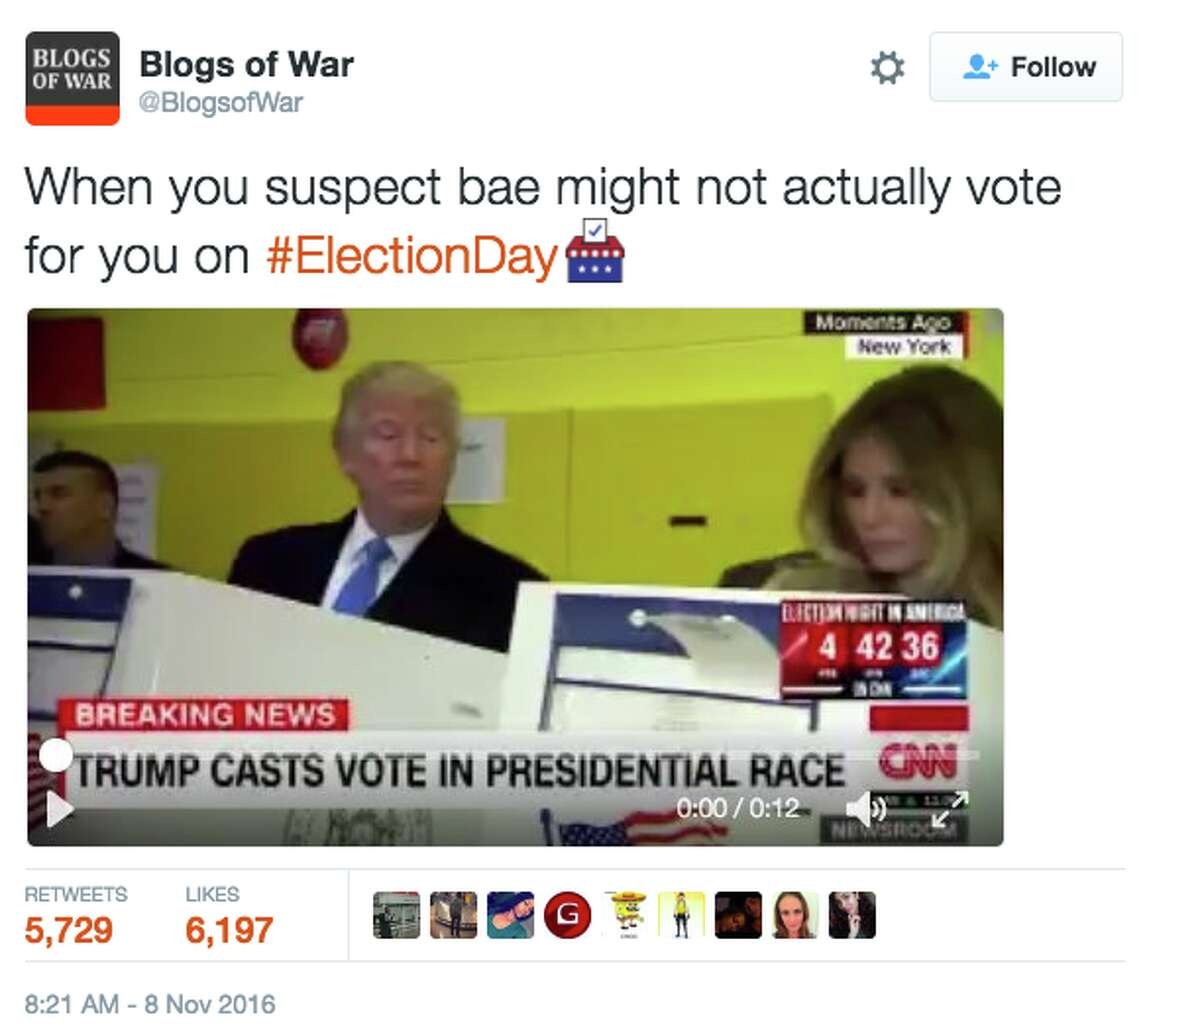 A tweet making fun of Donald Trump's glance over at Melania while she was voting.